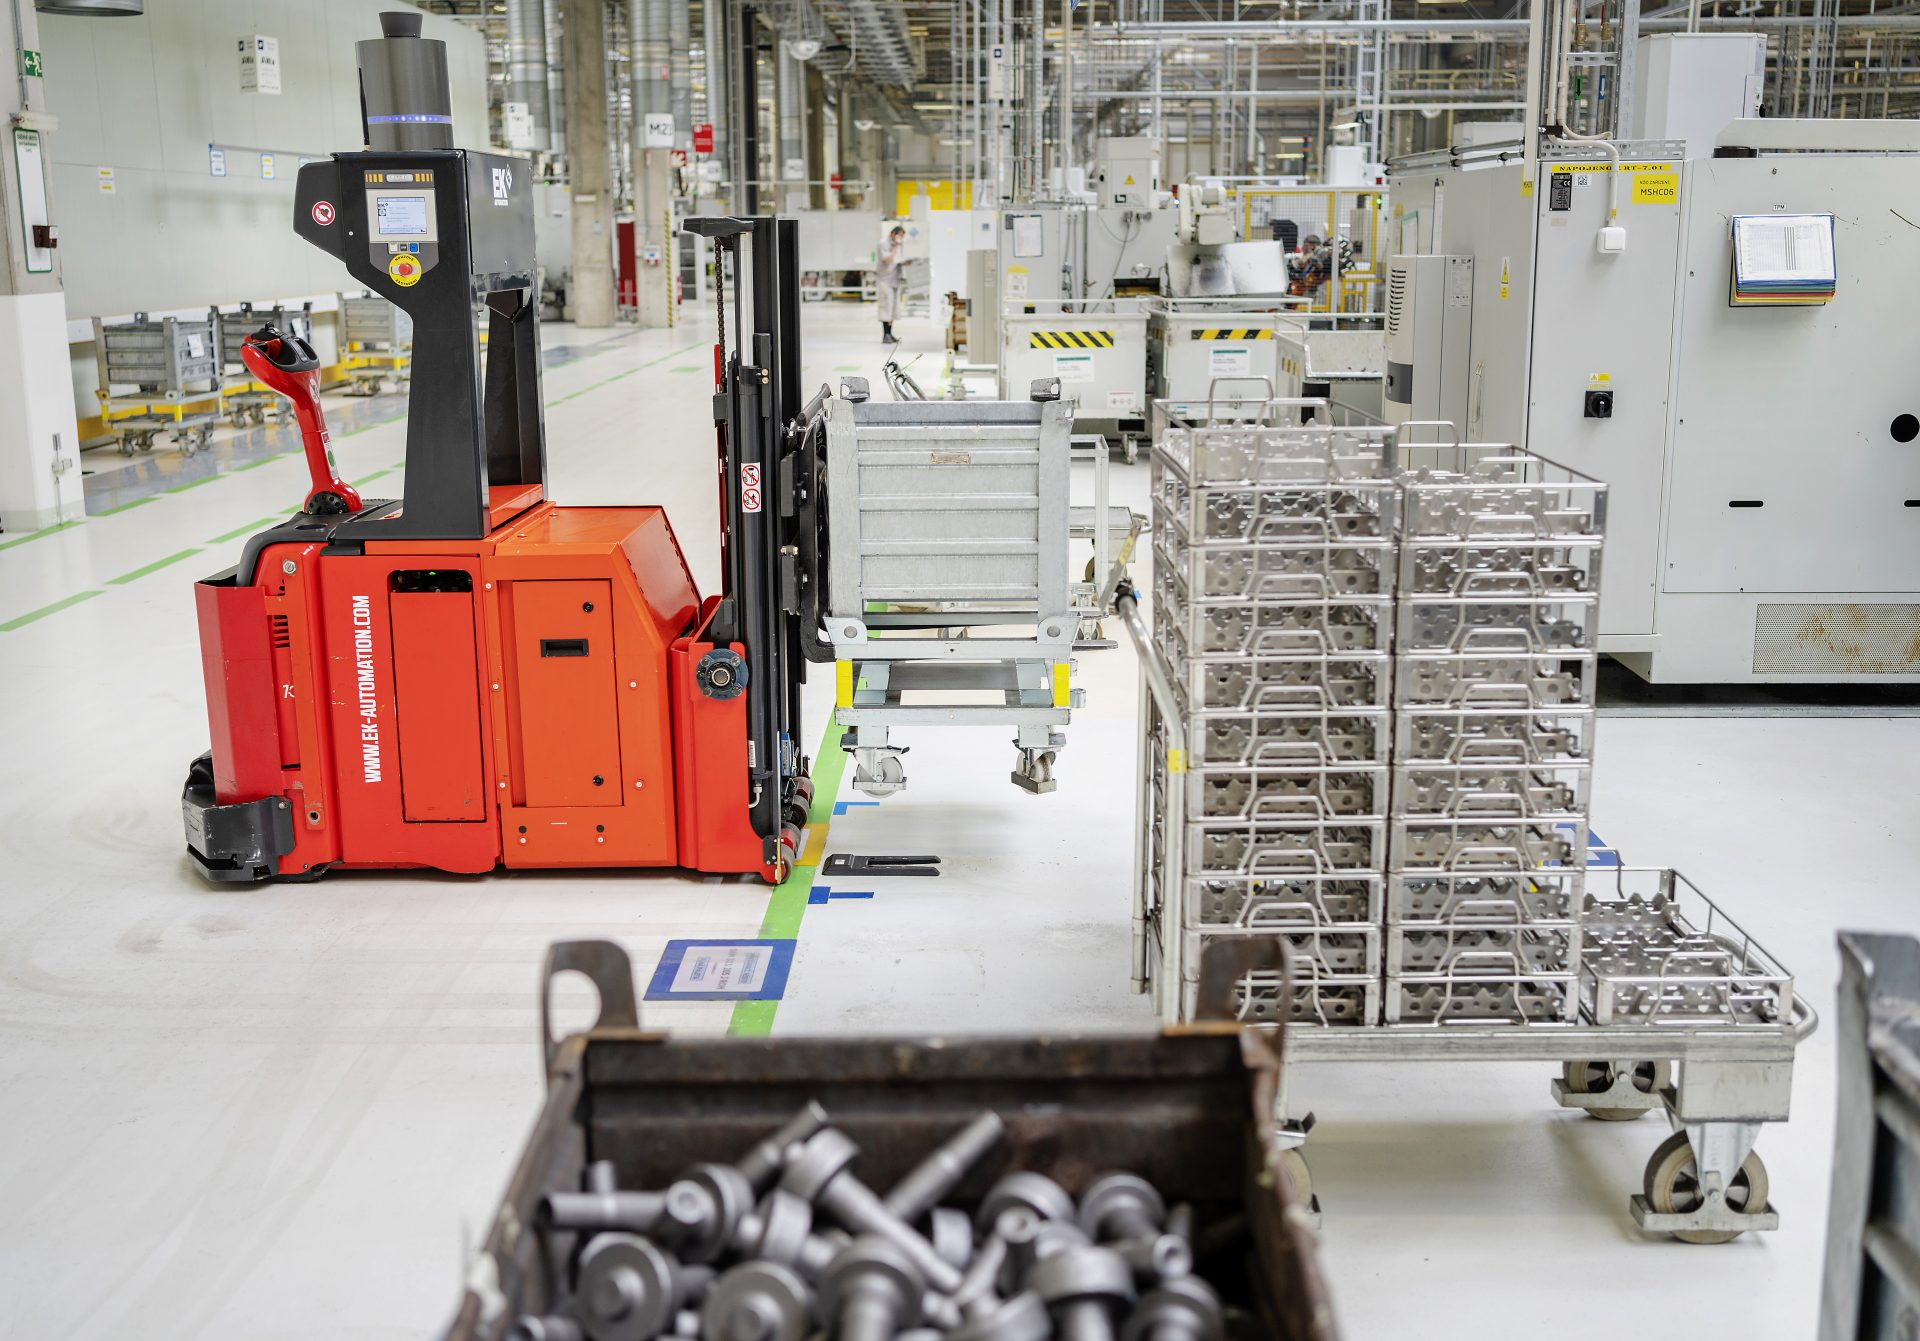 200713-Vrchaclabi-plant-launches-automated-ordering-1.JPG-1920x1341